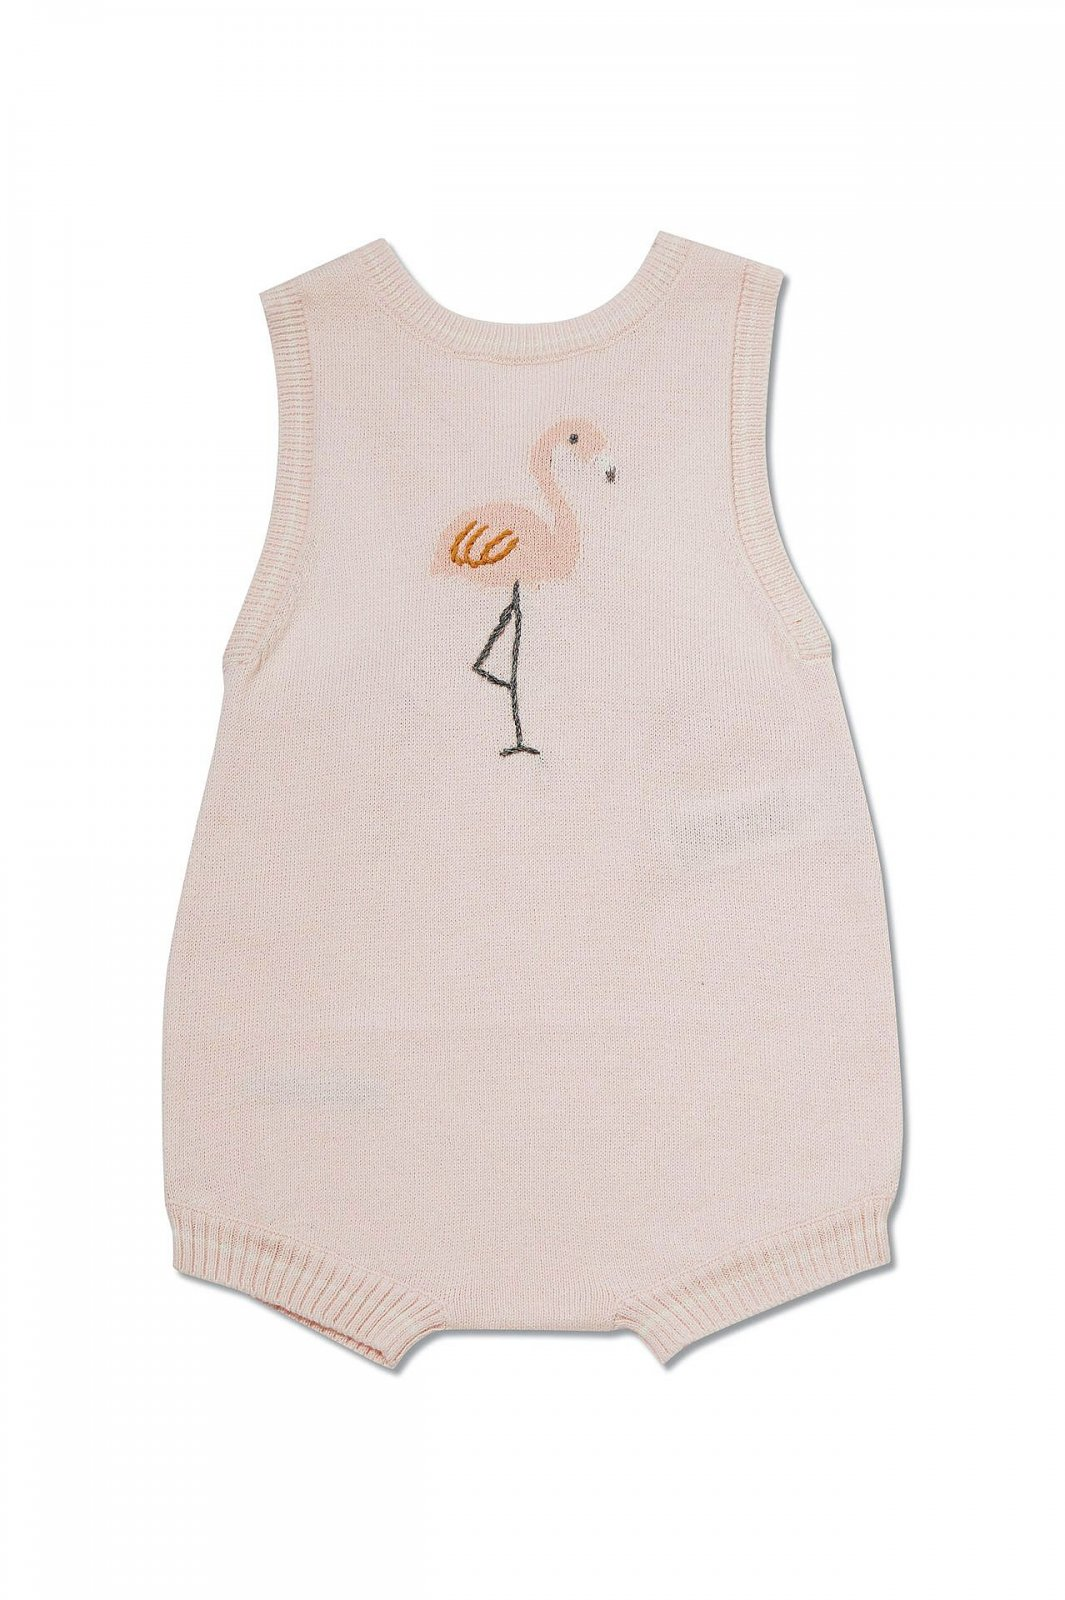 Flamingo Knit Sunsuit